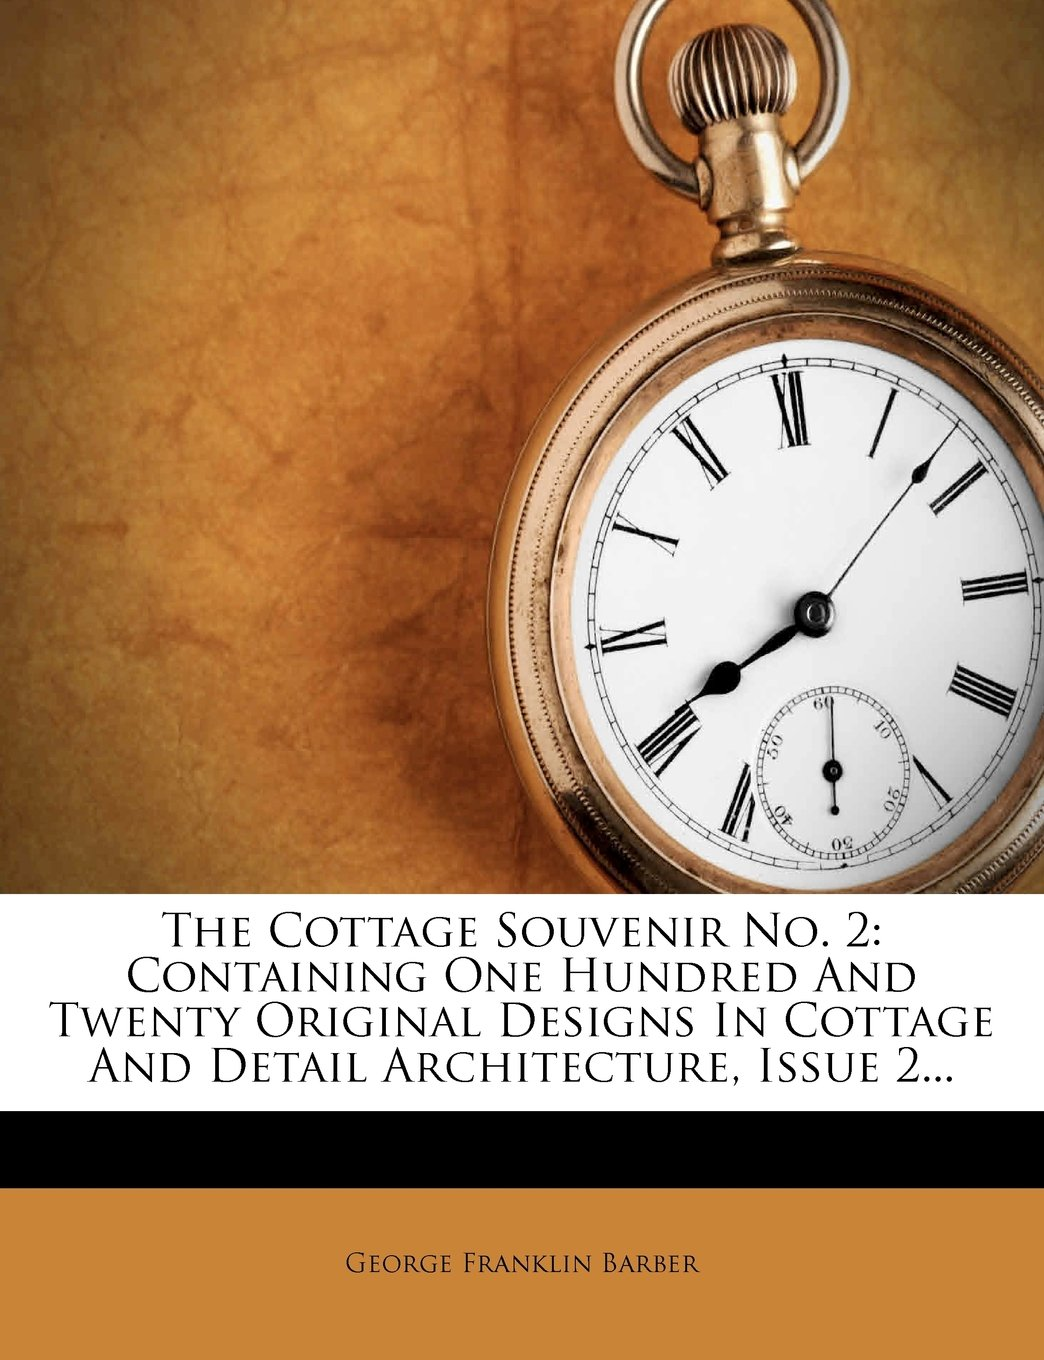 The Cottage Souvenir No. 2: Containing One Hundred And Twenty Original Designs In Cottage And Detail Architecture, Issue 2. ebook